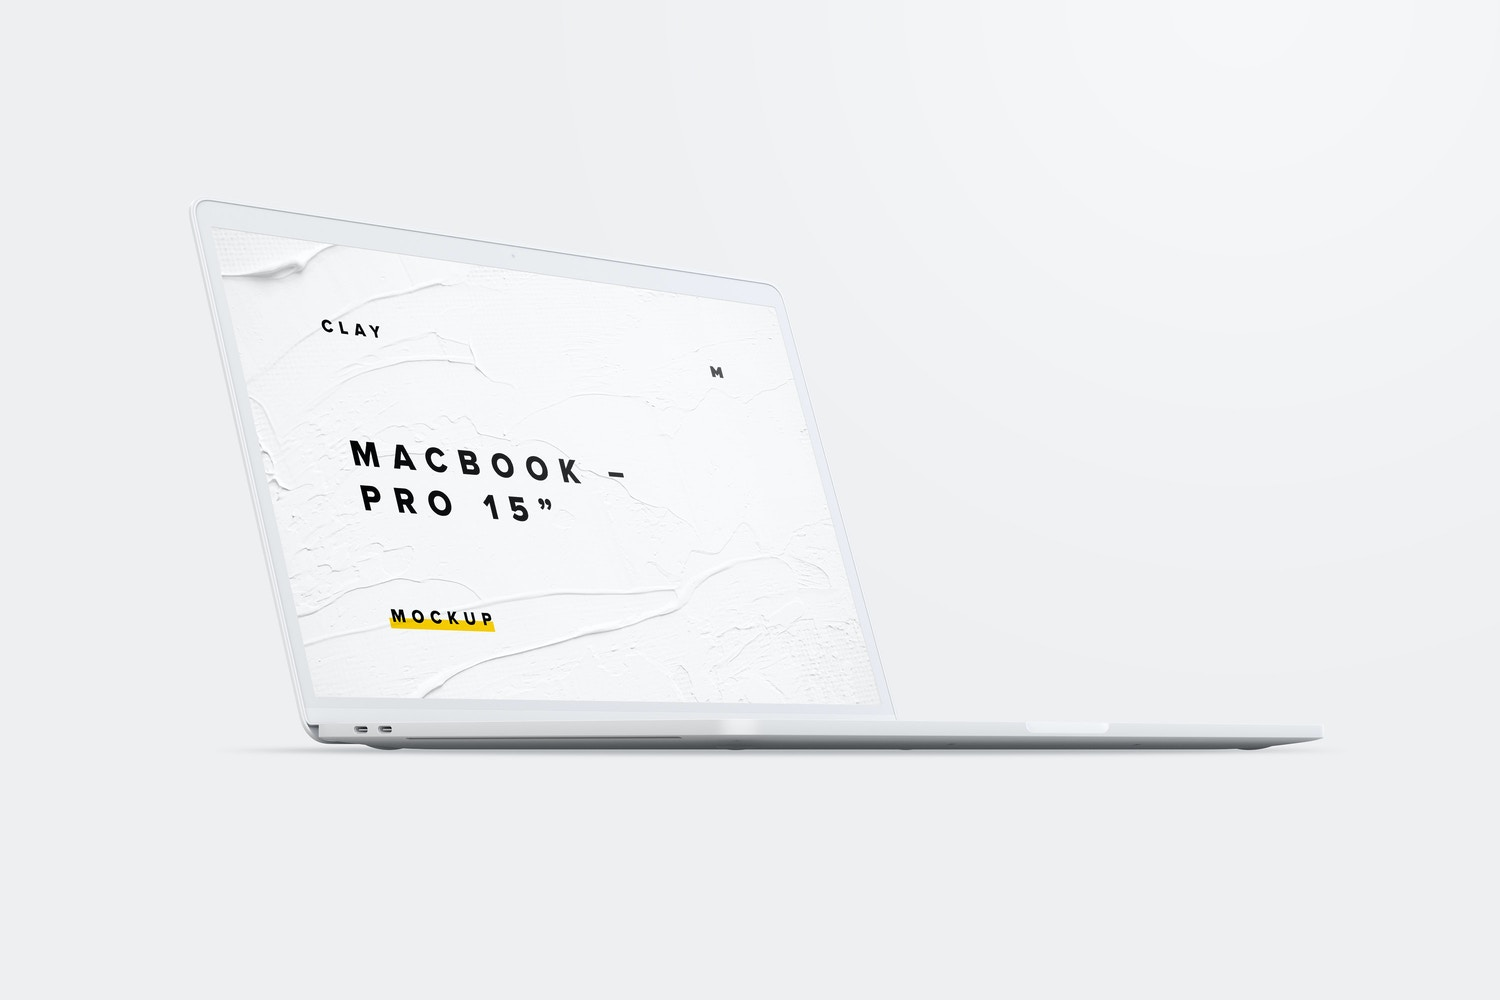 "Clay MacBook Pro 15"" with Touch Bar, Front Left View Mockup (1) by Original Mockups on Original Mockups"